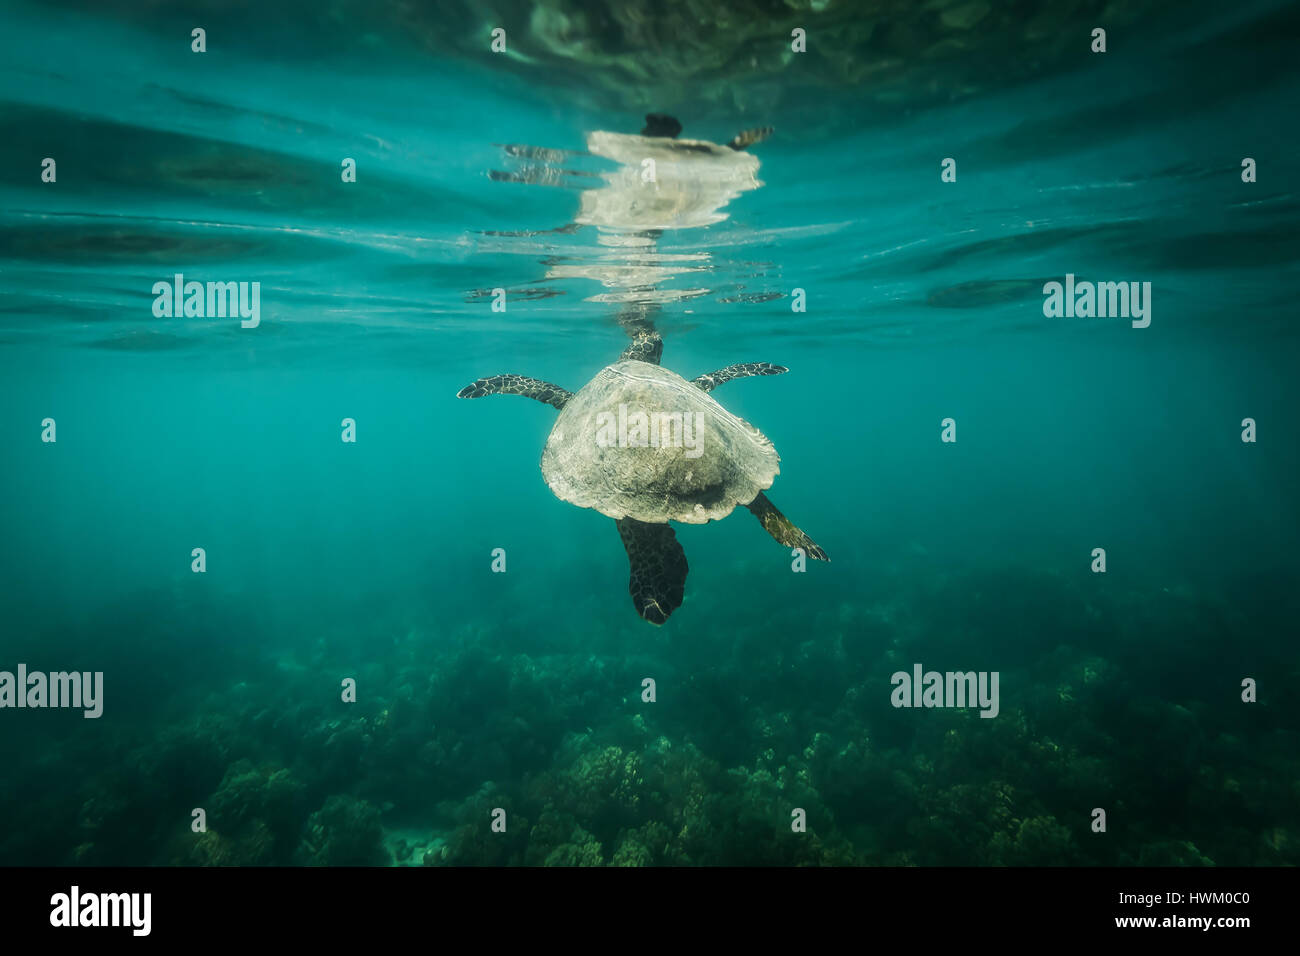 Hawksbill Turtle (Eretmochelys imbricata) Stock Photo